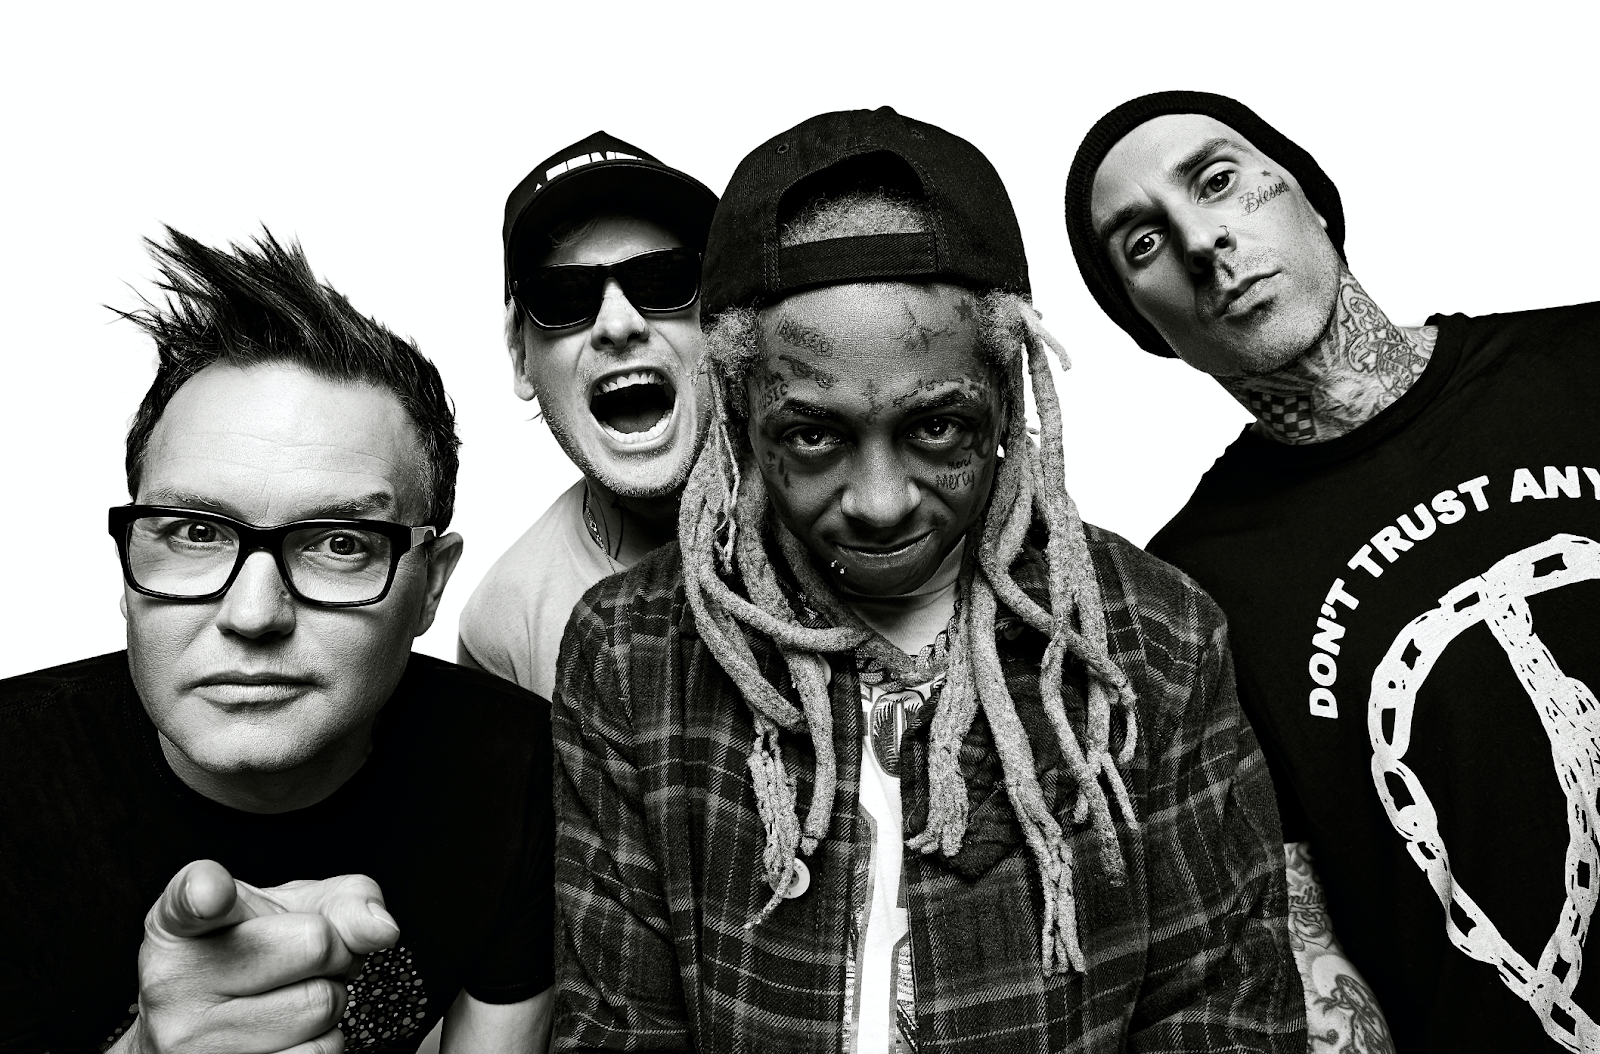 Blink-182 and Lil Wayne posing for a group picture while all staring at the camera.